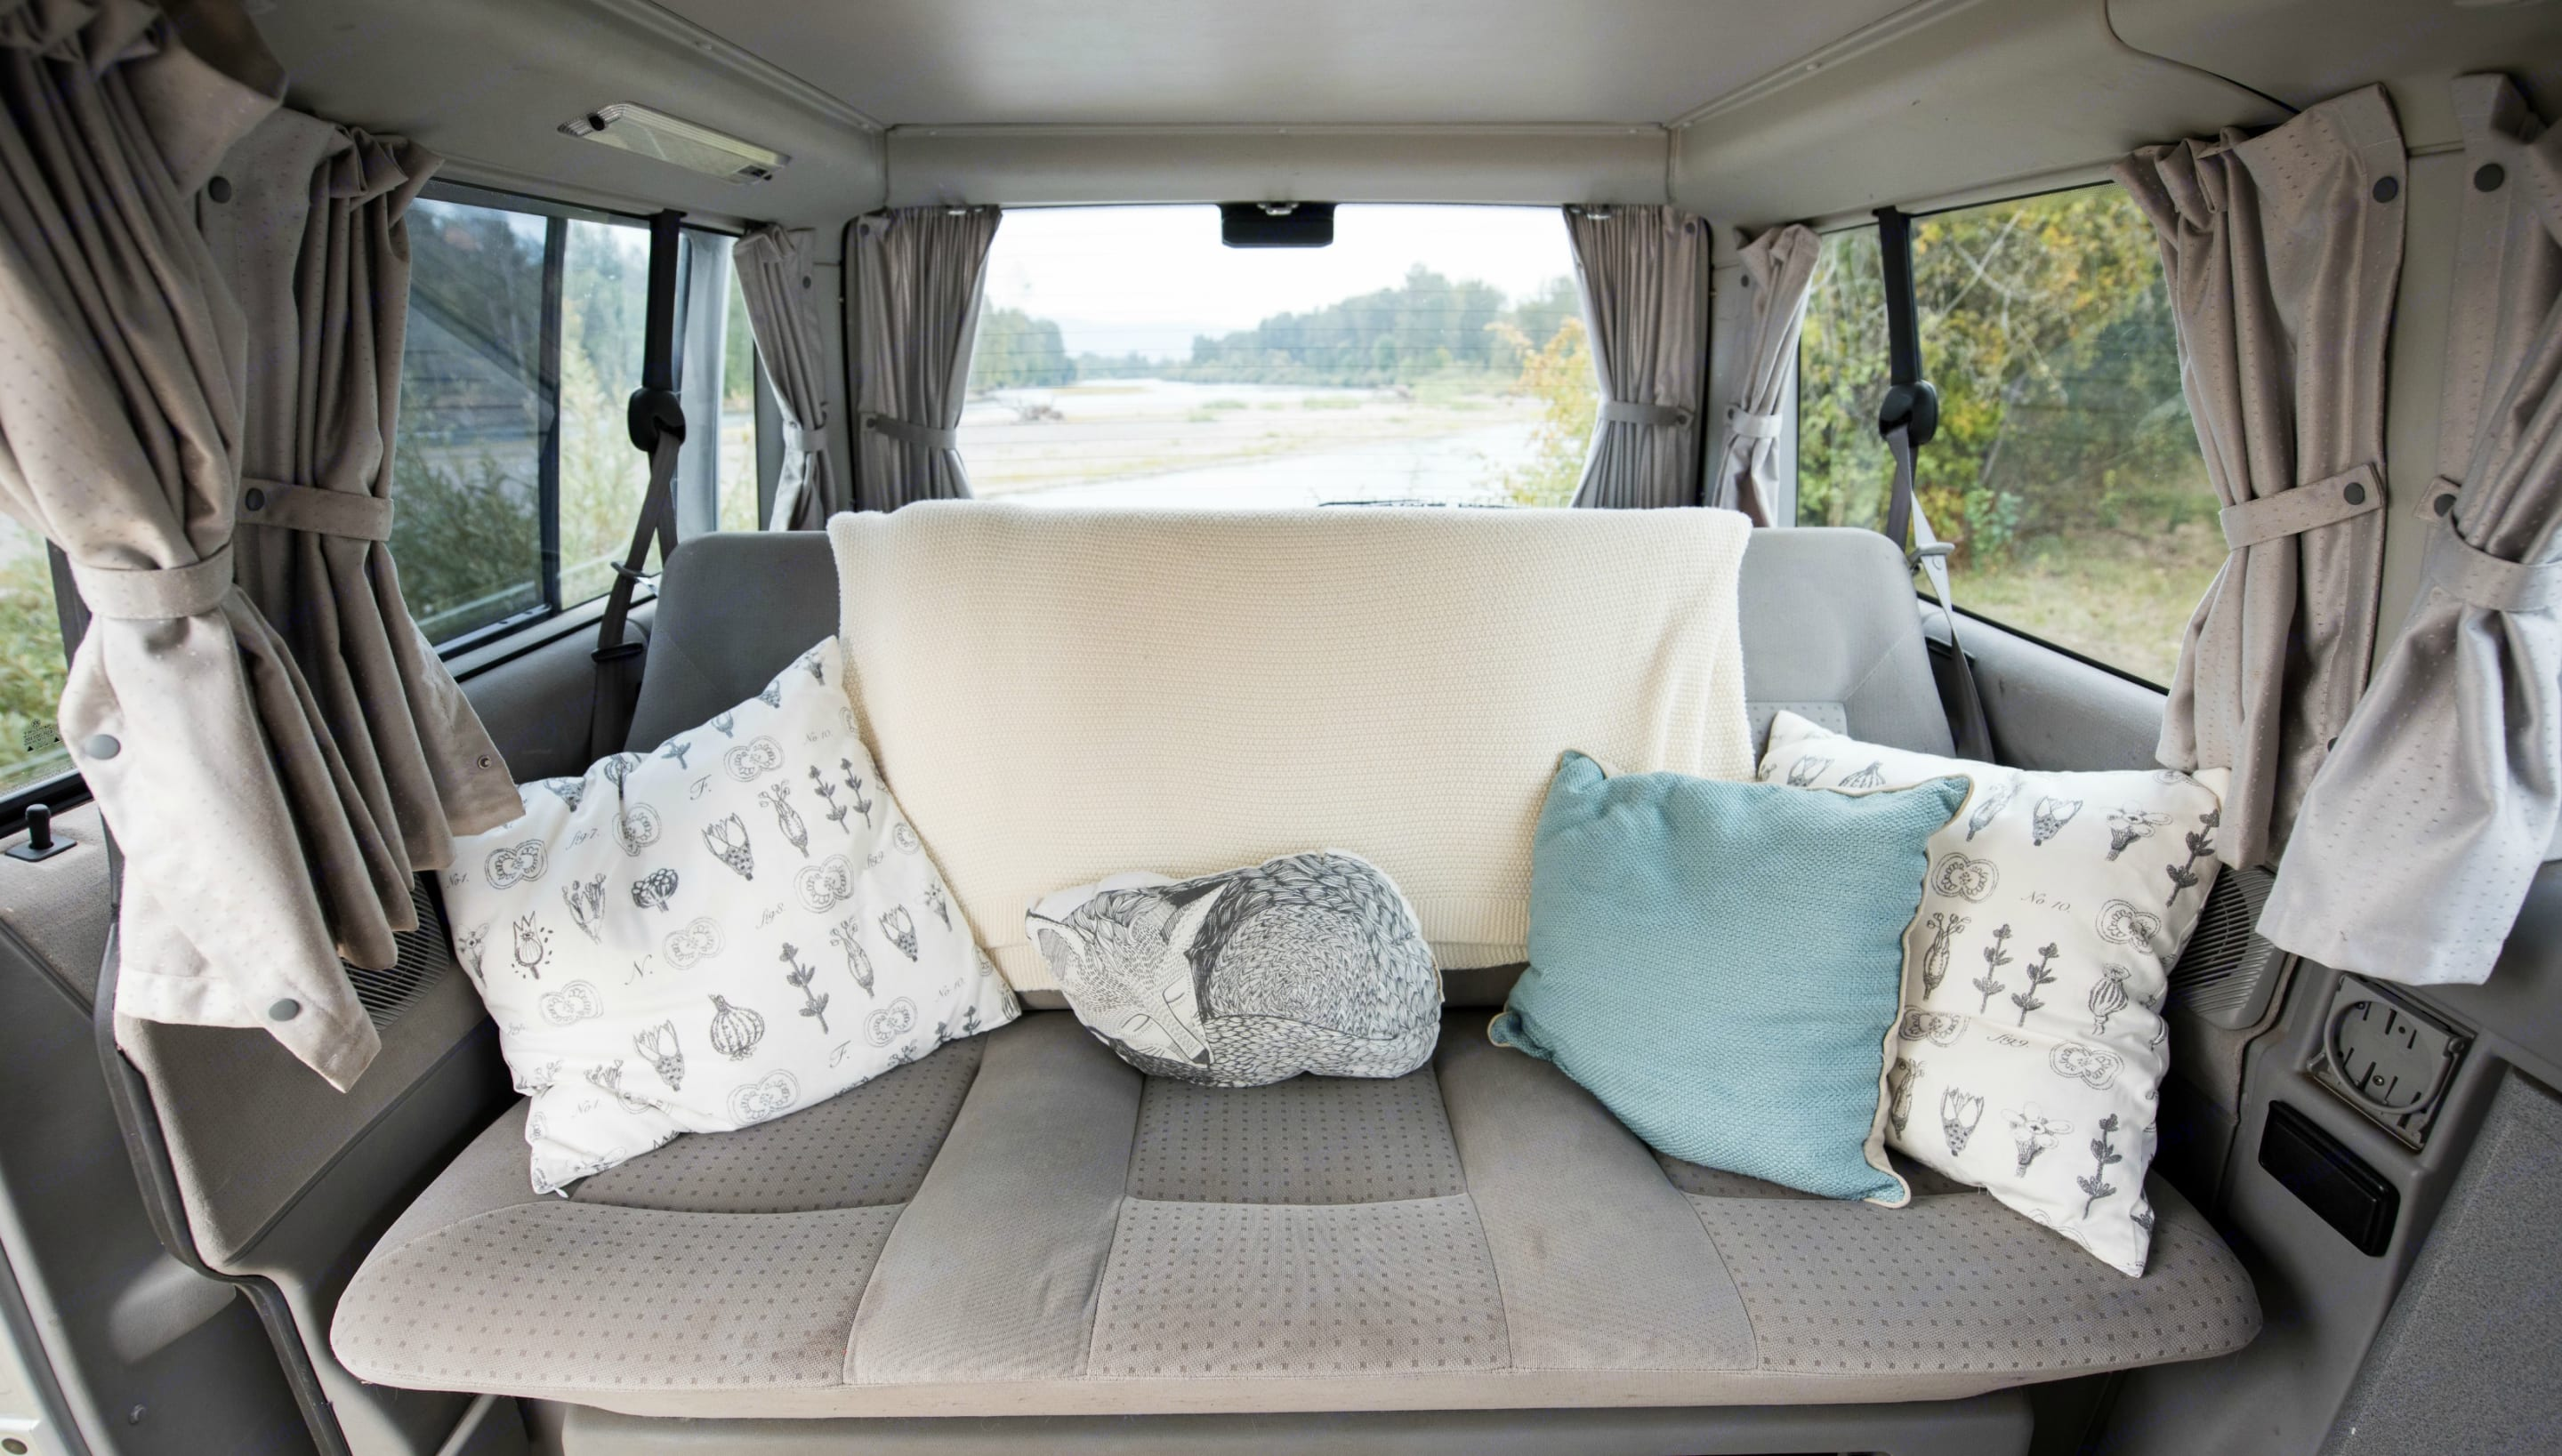 The Eurovan Weekender seats three in the back seat, and also includes a rear facing jump seat behind the driver for a total capacity of six passengers.. Volkswagen Eurovan Weekender 2002